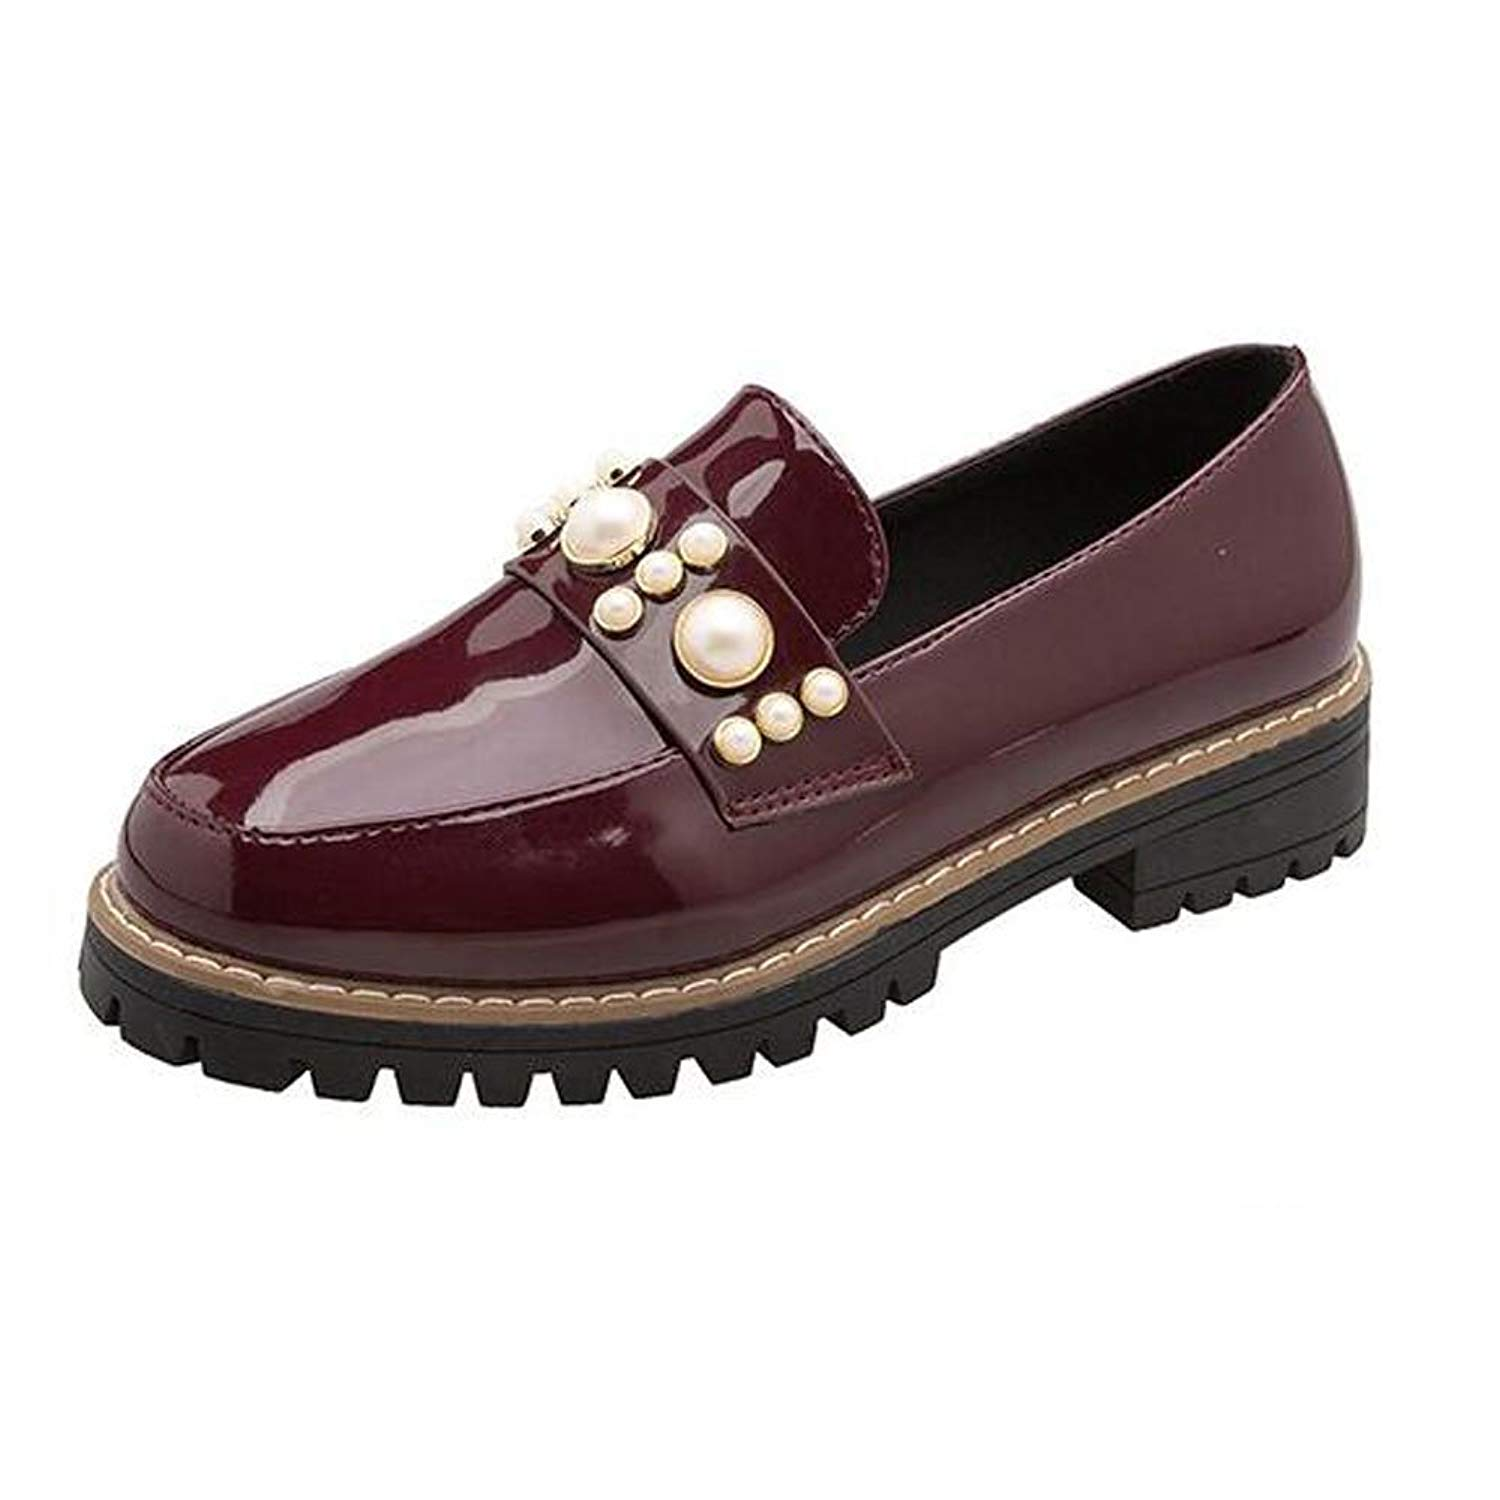 119192f8aa1c2 Get Quotations · Slduv7 Women Oxfords Fashion Patent Leather Oxfords Shoes  Casual Slip-On Low Heel Shoes Low